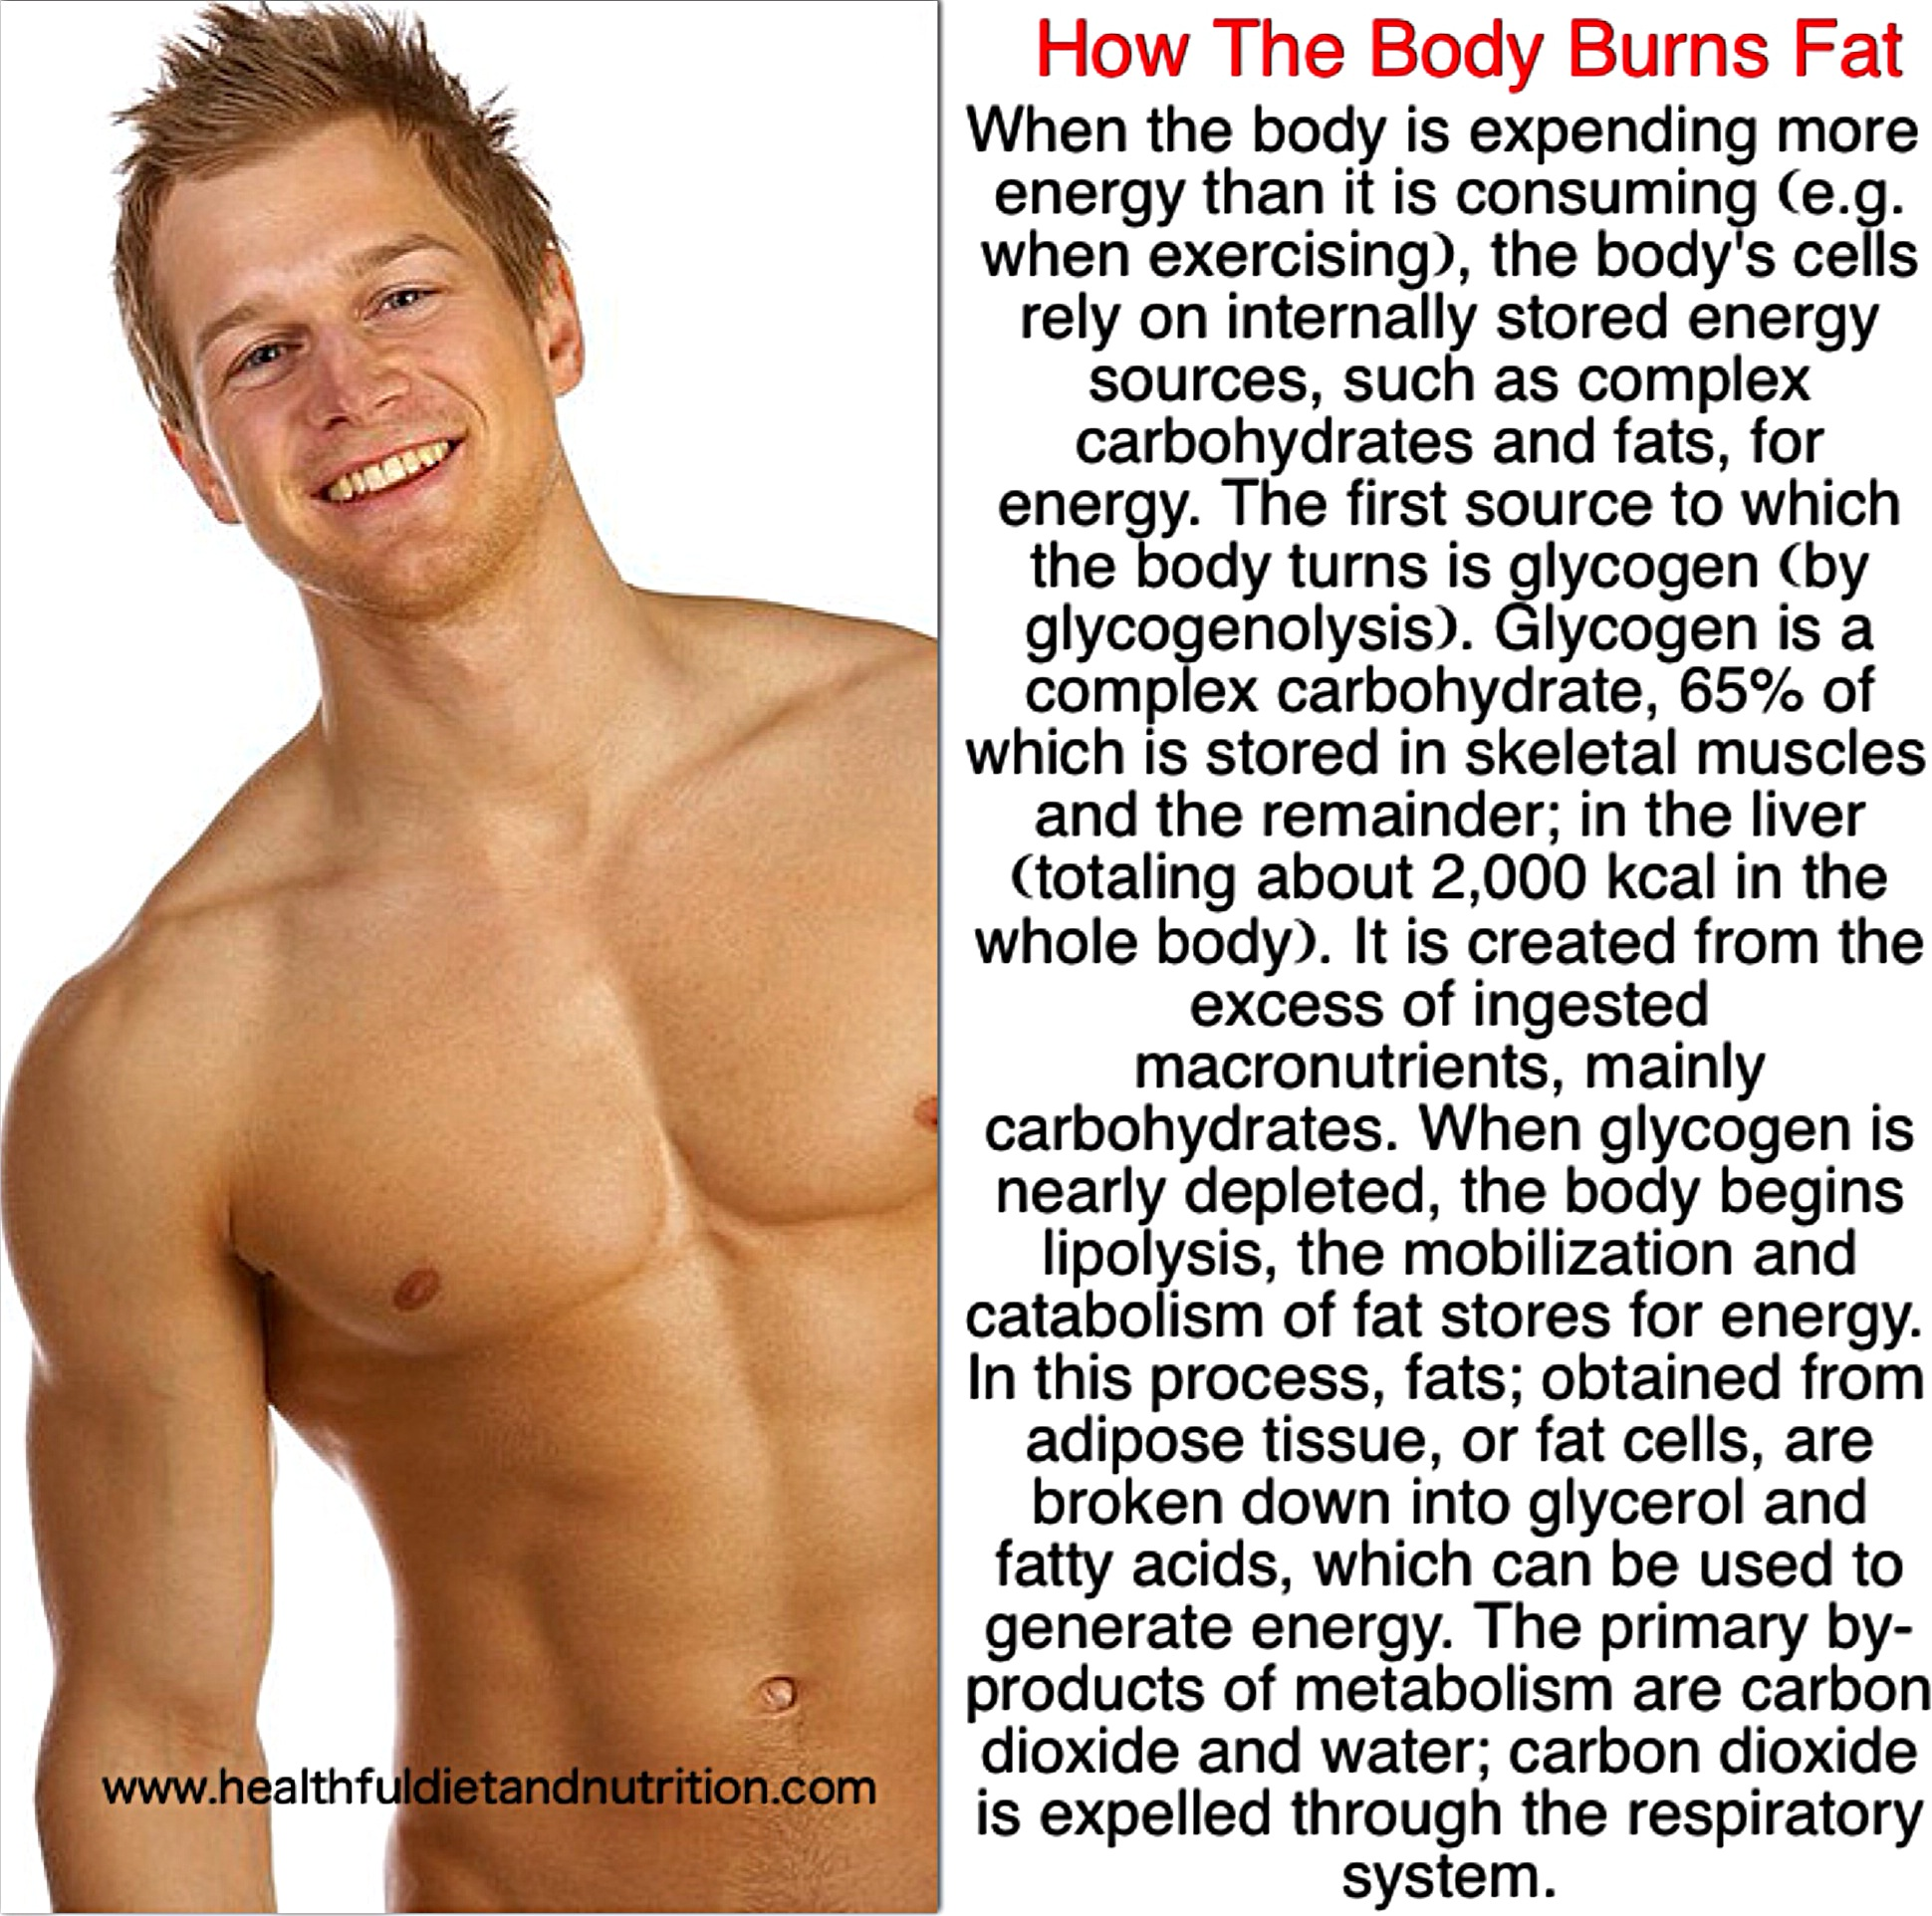 How the body burns fat